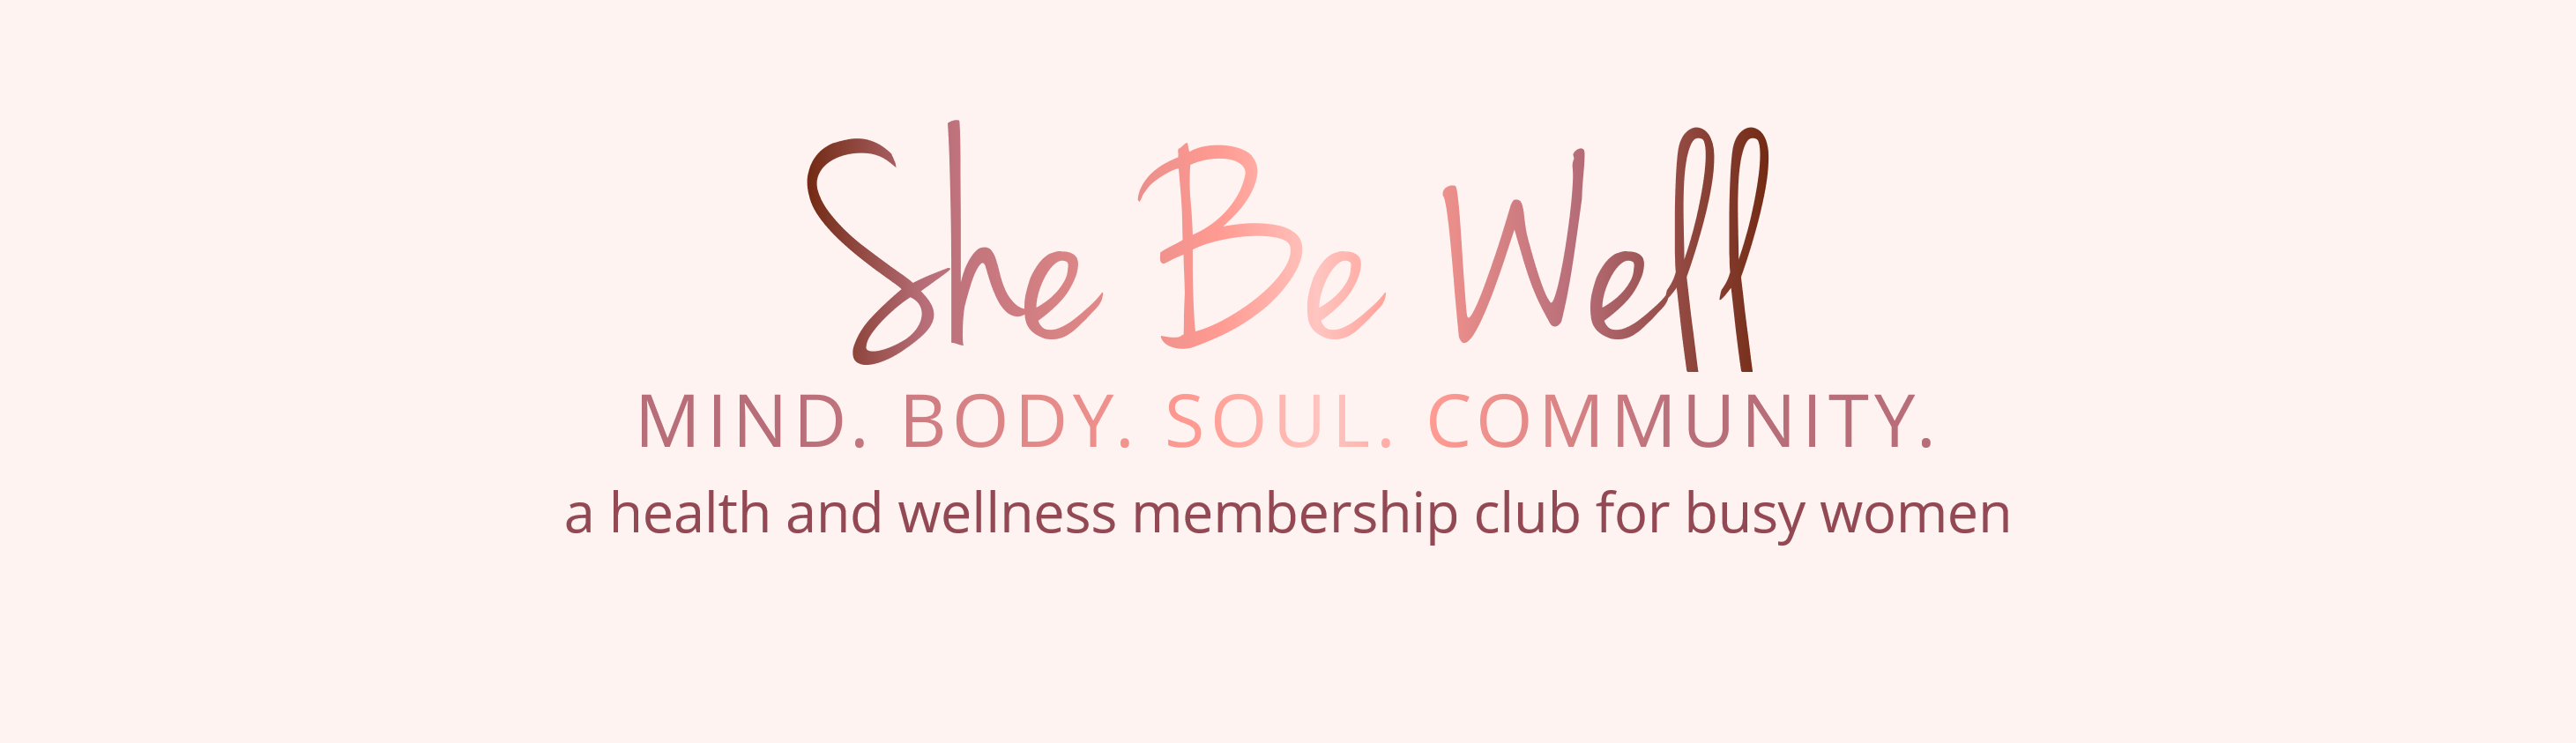 health and wellness community for women